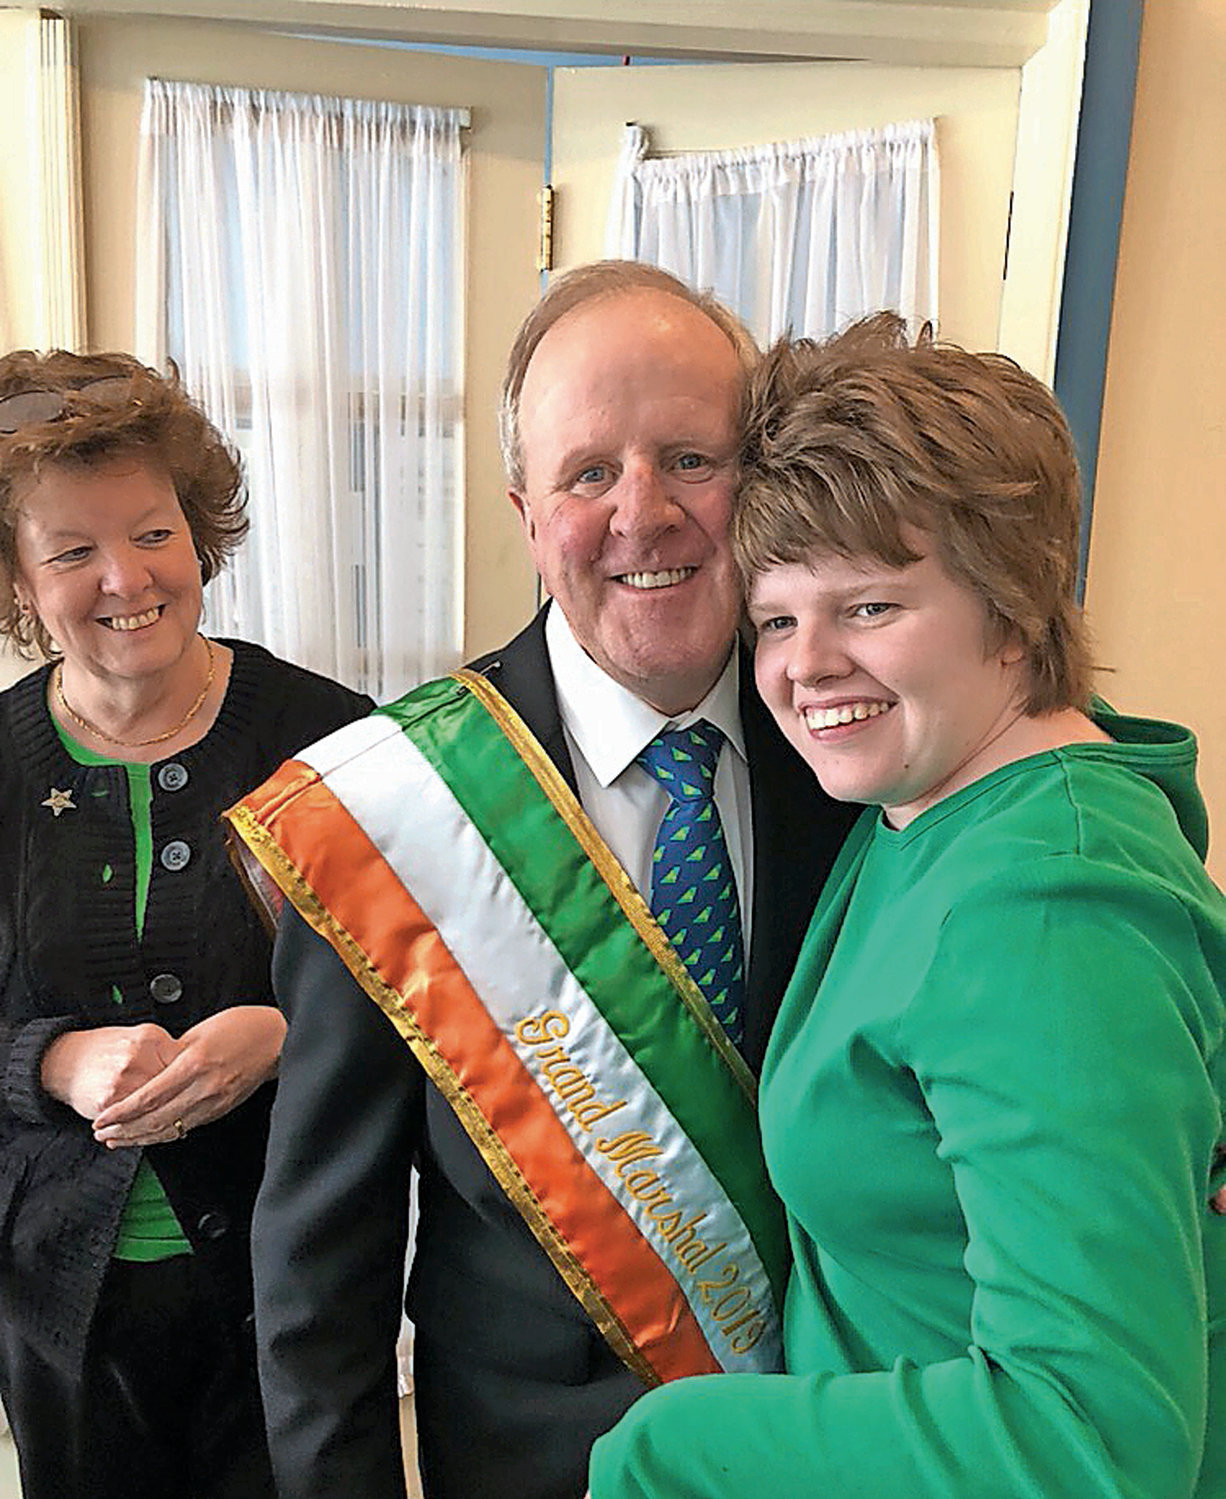 Furlong's wife, Nancy, left, and daughter, Emily, said they are both excited to see him lead the St. Patrick's Day Parade as the Grand Marshal.